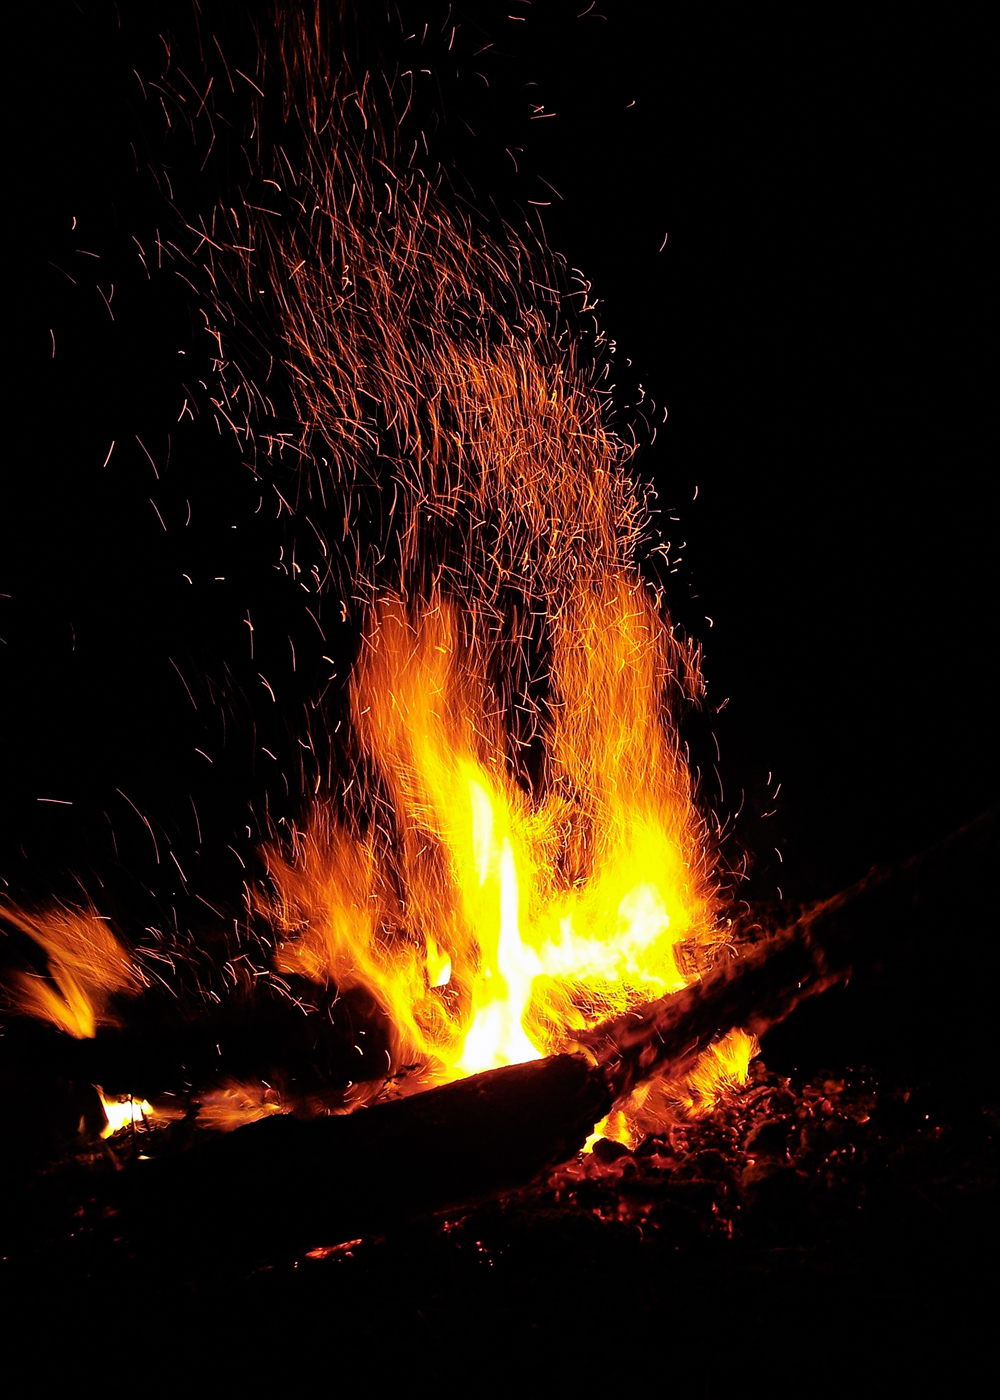 Campfire, Abstract, Fire, Wood, Warmth, HQ Photo